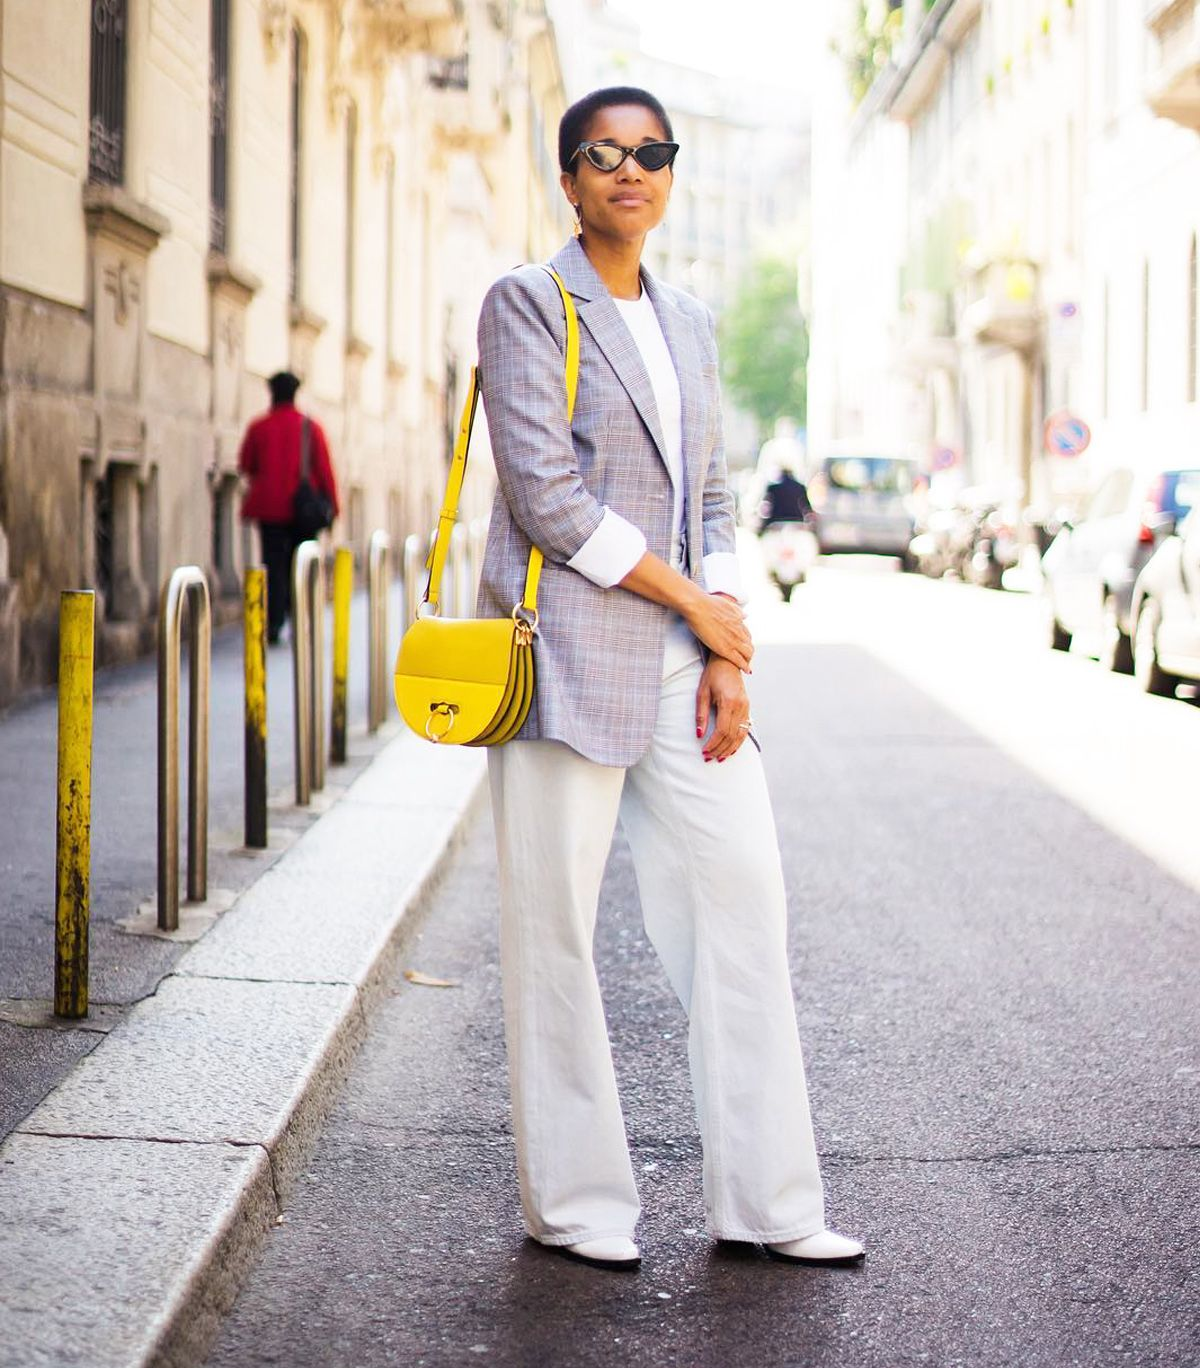 The Most Expensive-Looking Ways to Wear a Pair of White Jeans